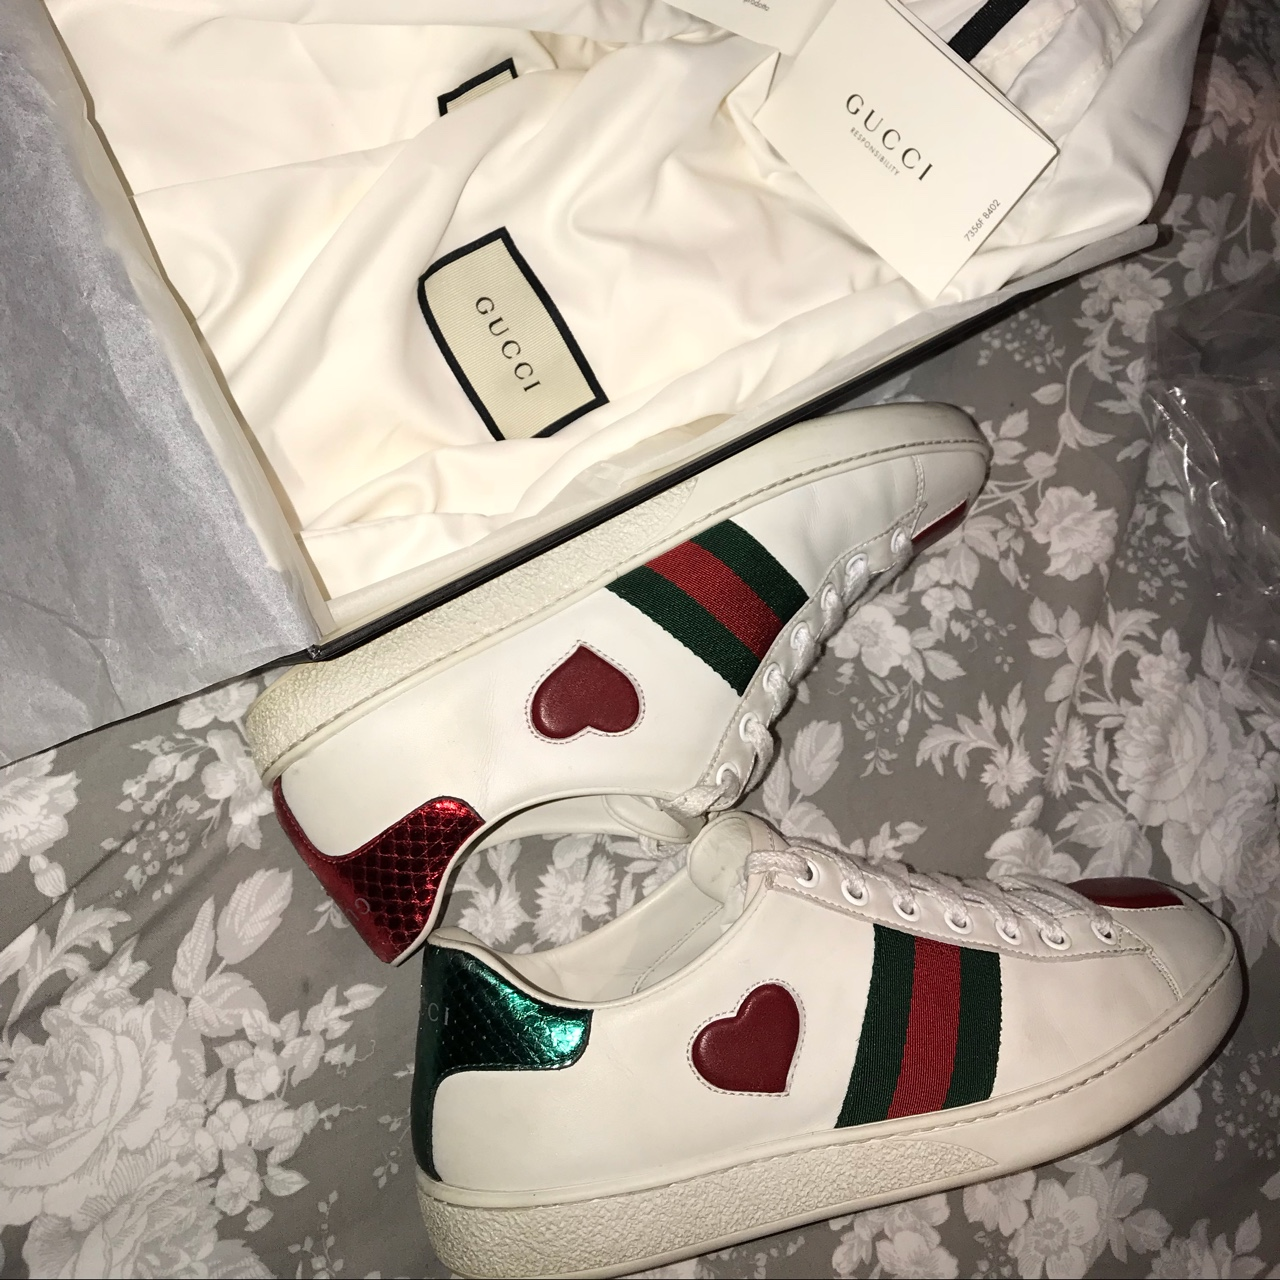 Gucci ace leather love heart sneakers